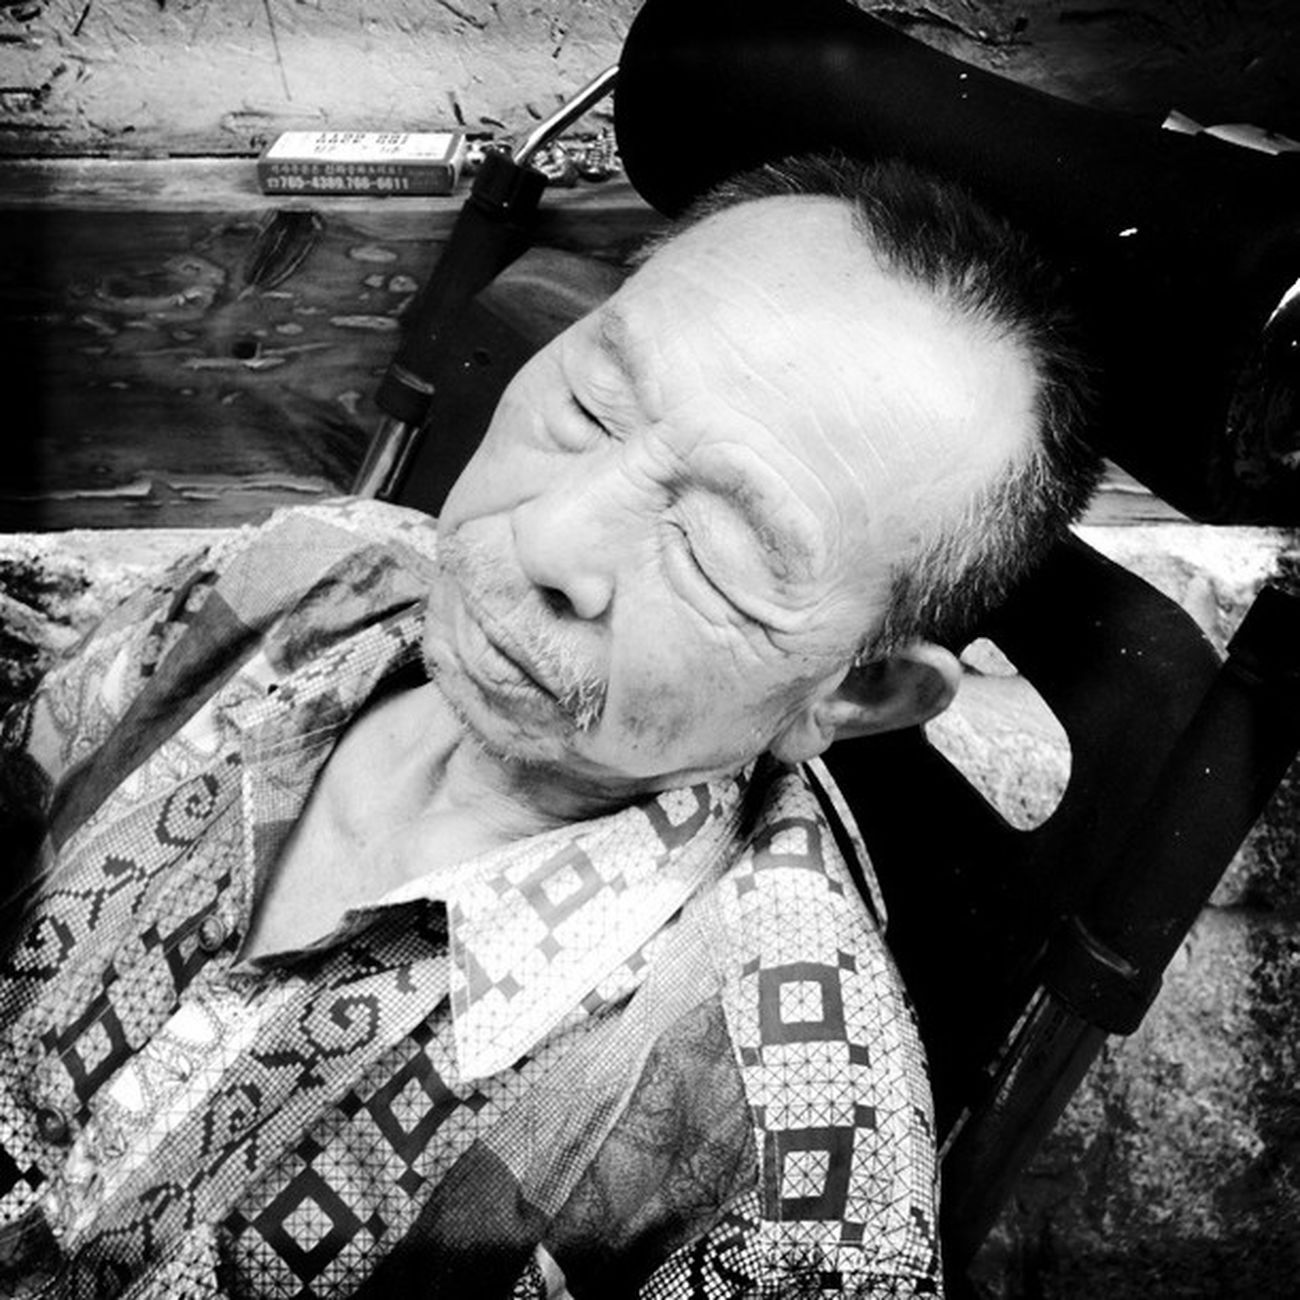 Siesta #Hipstamatic #Oggl #JohnS #BlacKeysXF Hipstamatic Johns Oggl BlacKeysXF